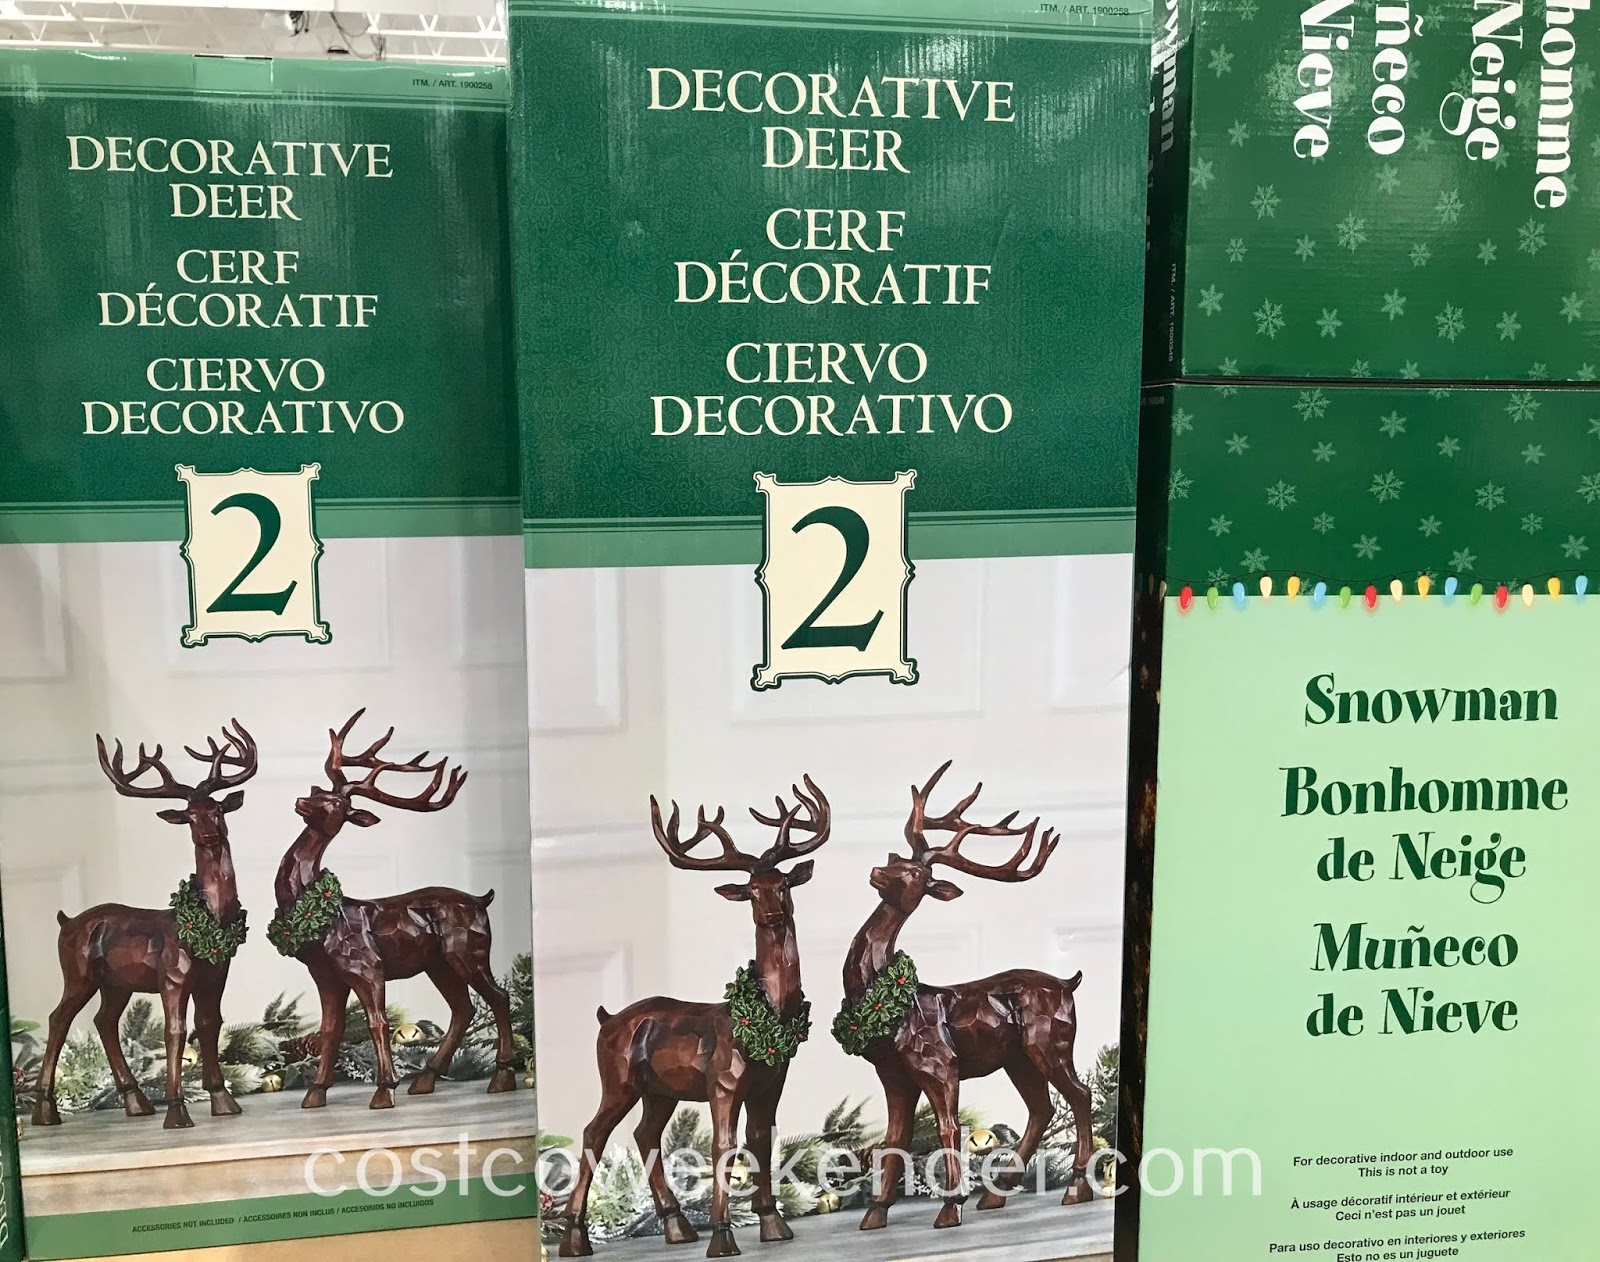 Display these Decorative Carved Wood Look Deer at your home for Christmas